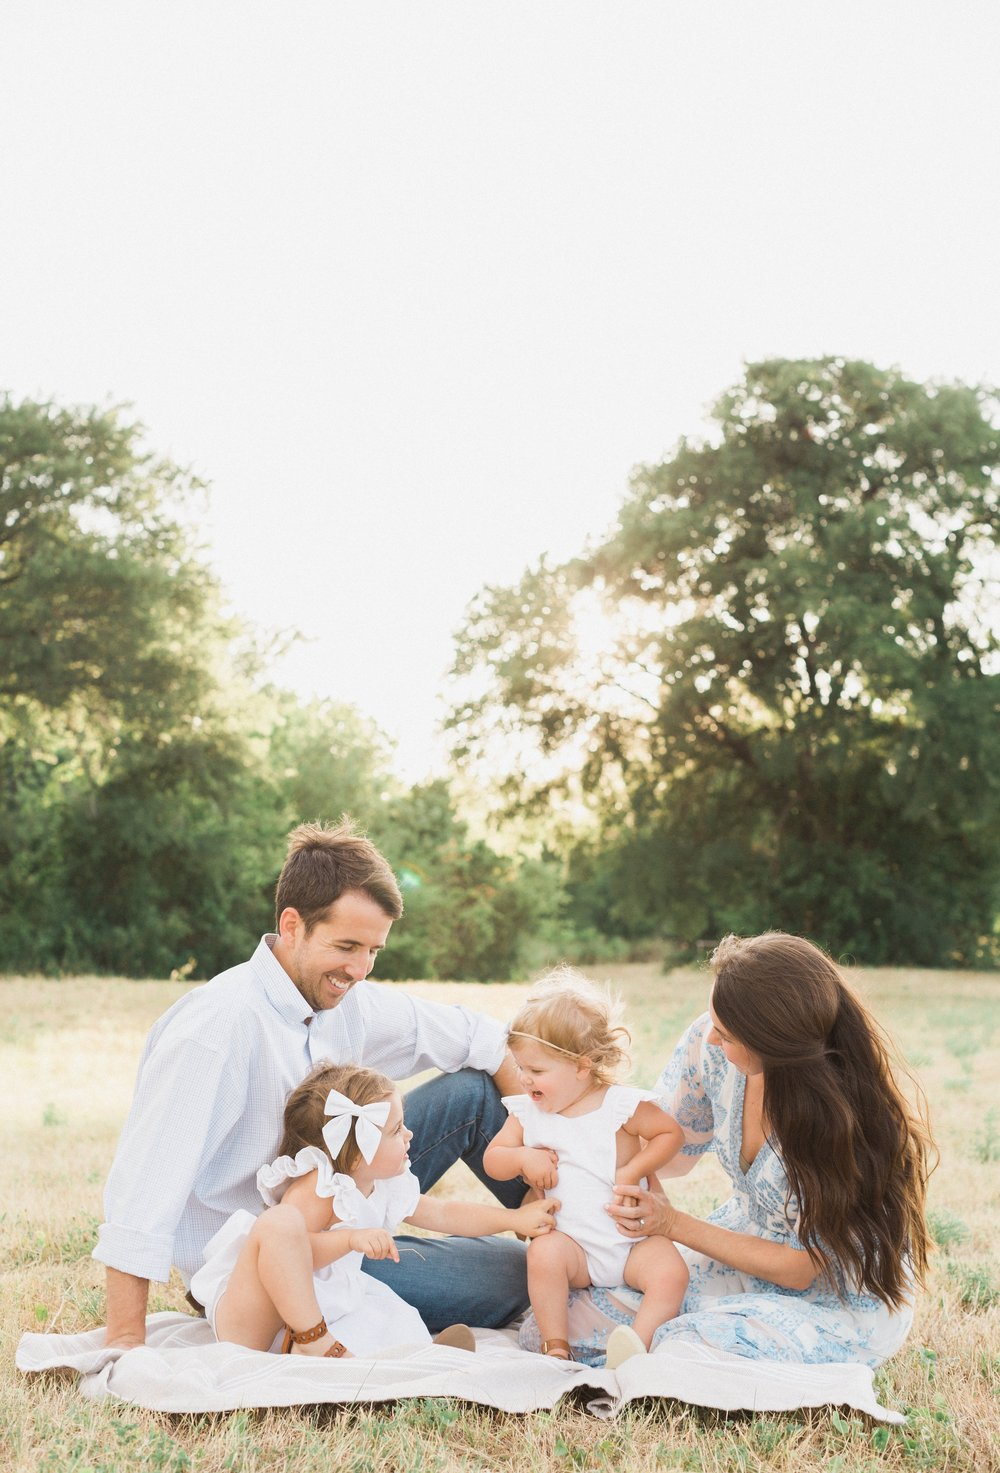 Maly+Family+Session+2018-311.jpg